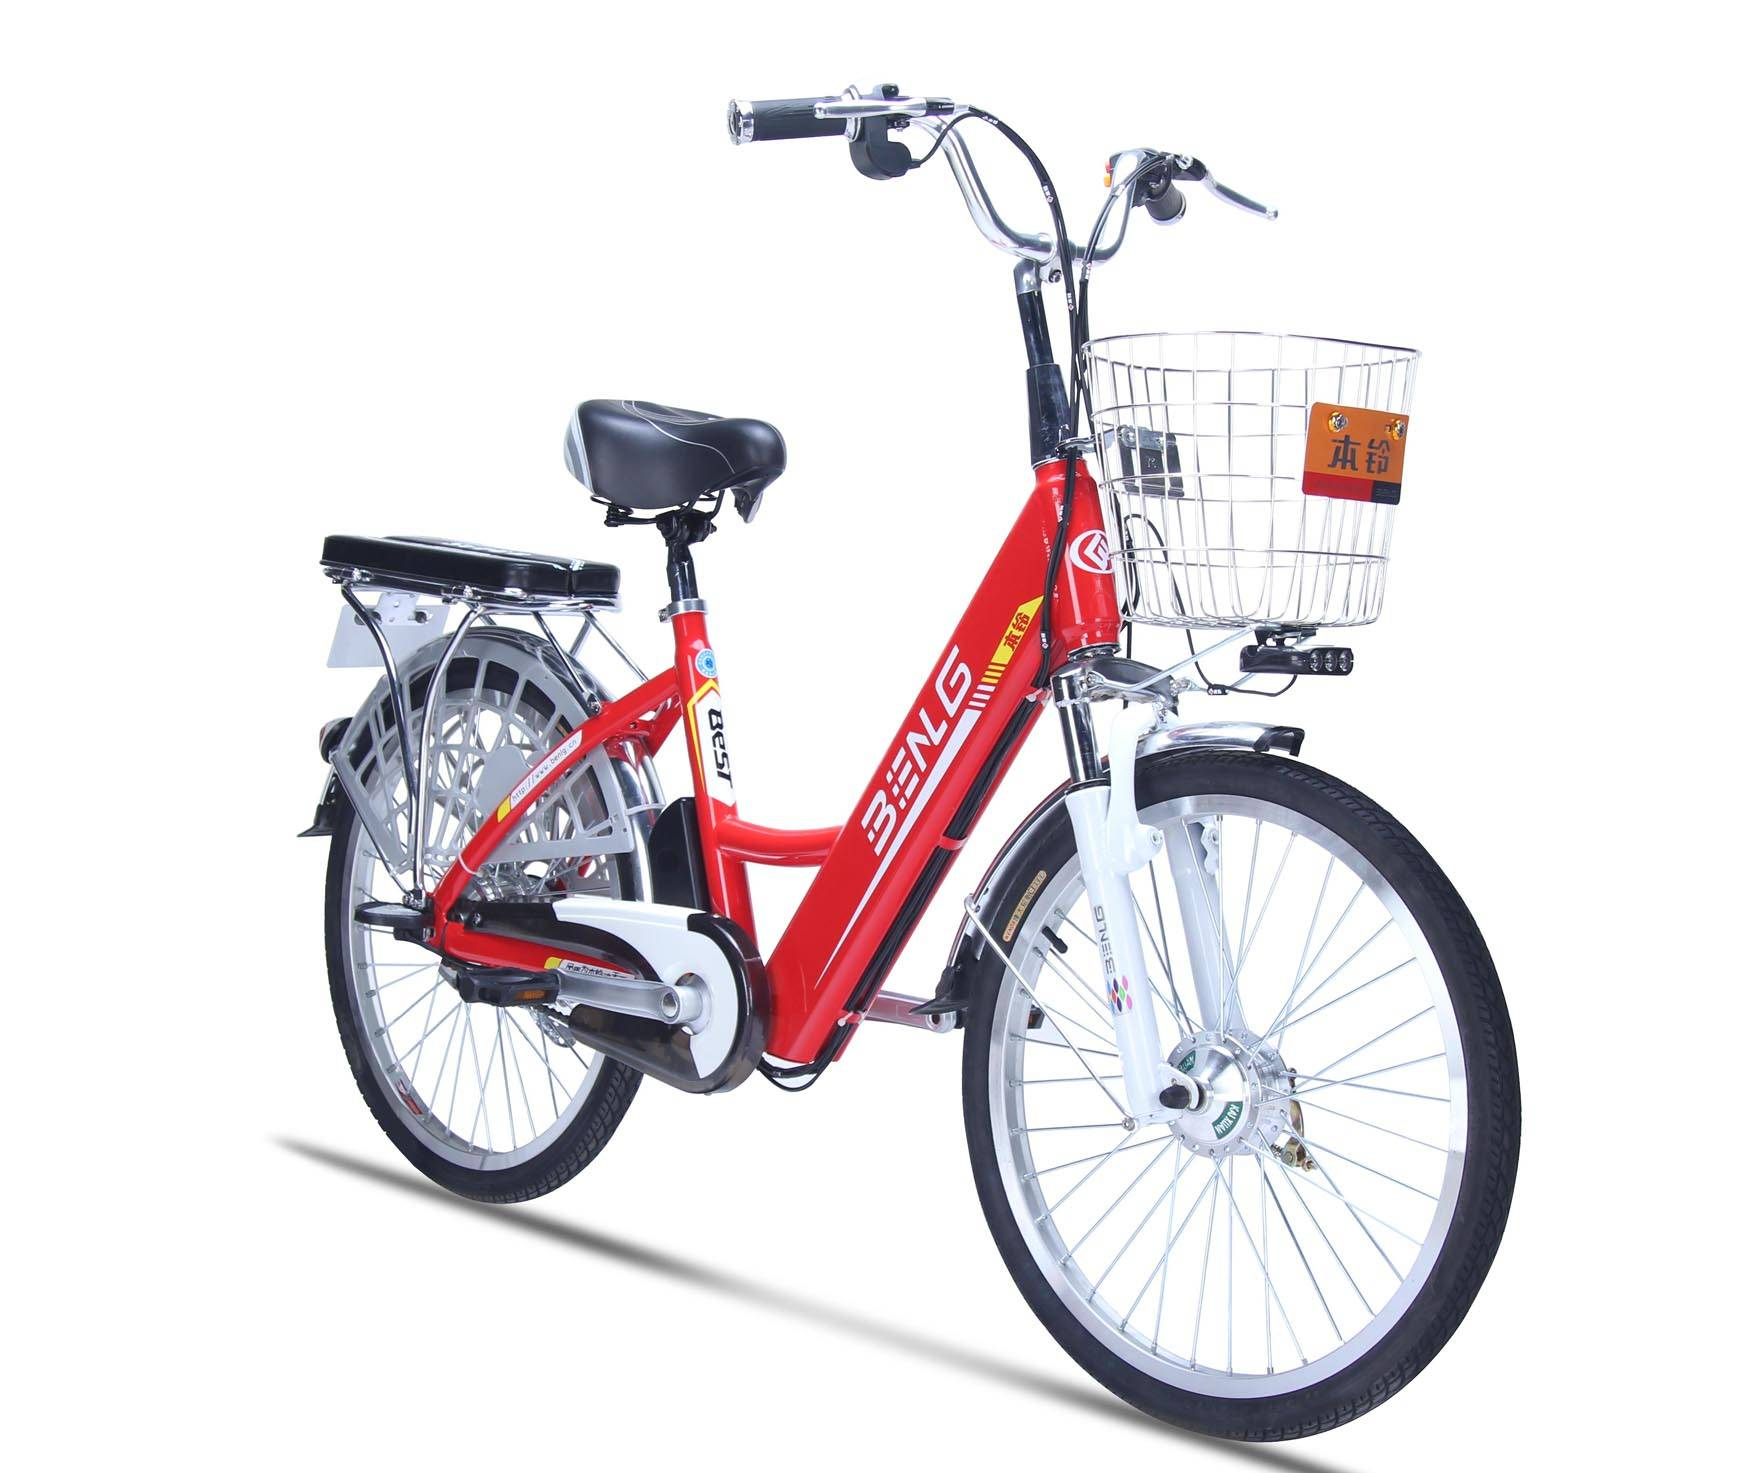 250W convenient Lithium e-bike green bike rental bike